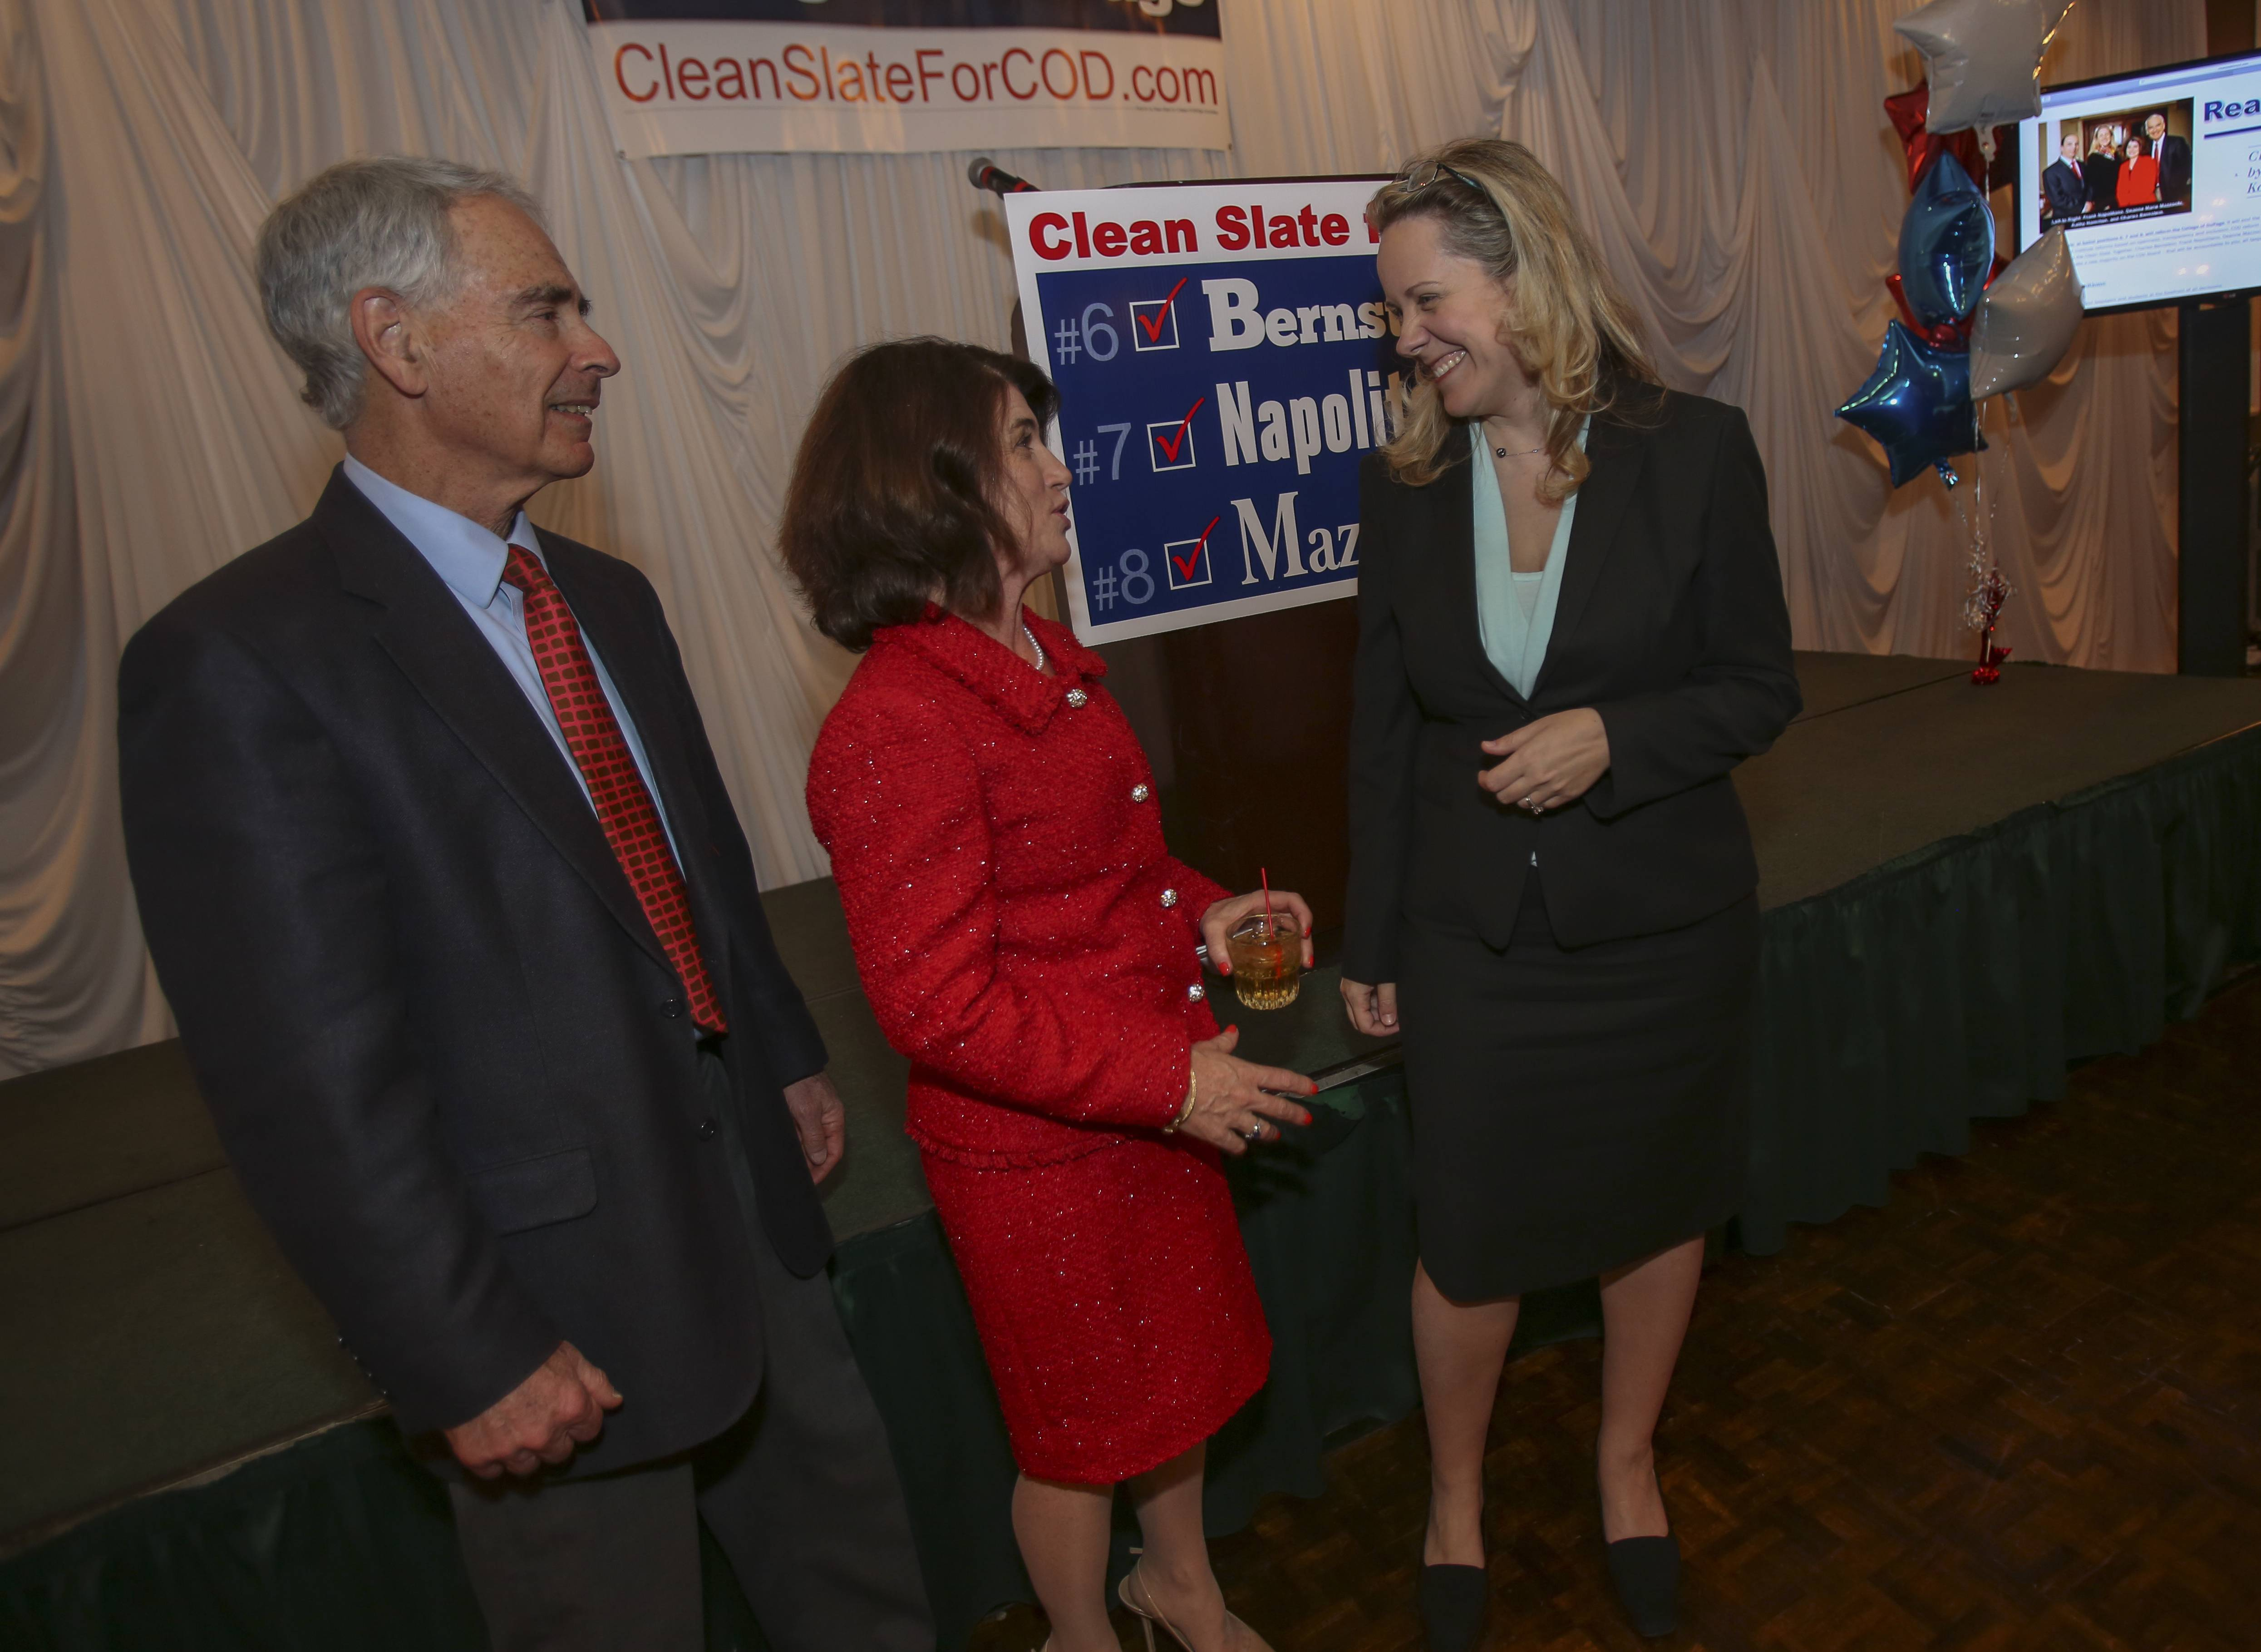 Charles Bernstein, left, and Deanne Mazzochi, right, celebrate their victory Tuesday with Kathy Hamilton, who endorsed their Clean Slate candidacy for the College of DuPage board.